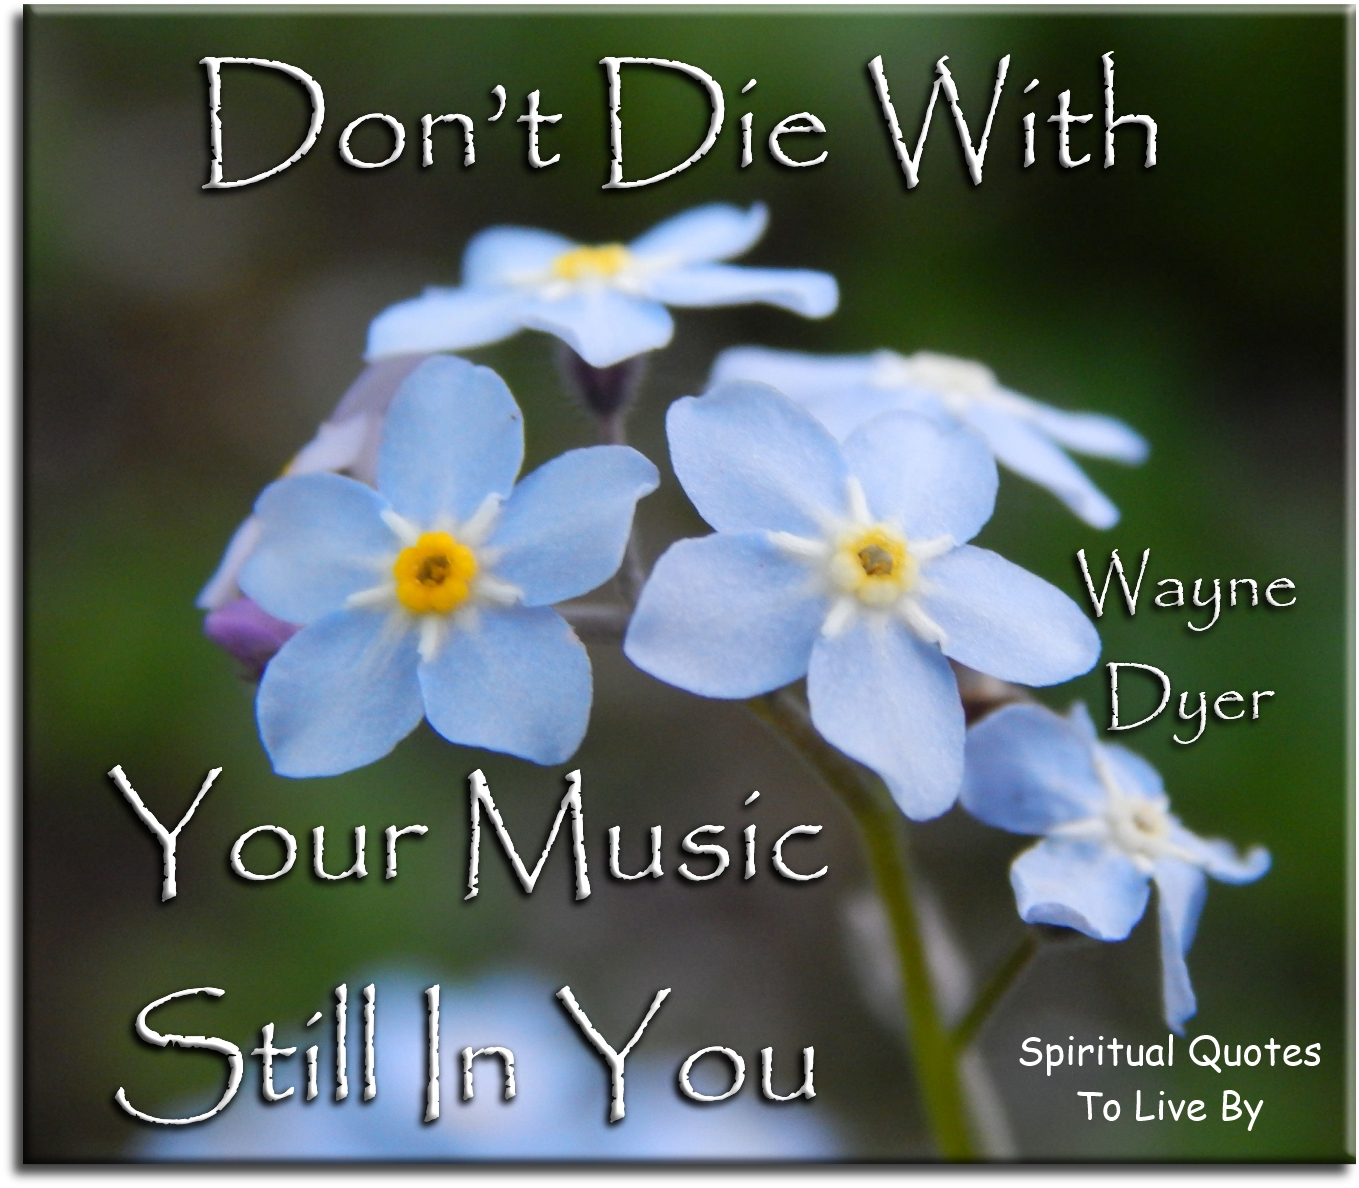 Wayne Dyer quote: Don't die with your music still in you. Spiritual Quotes To Live By